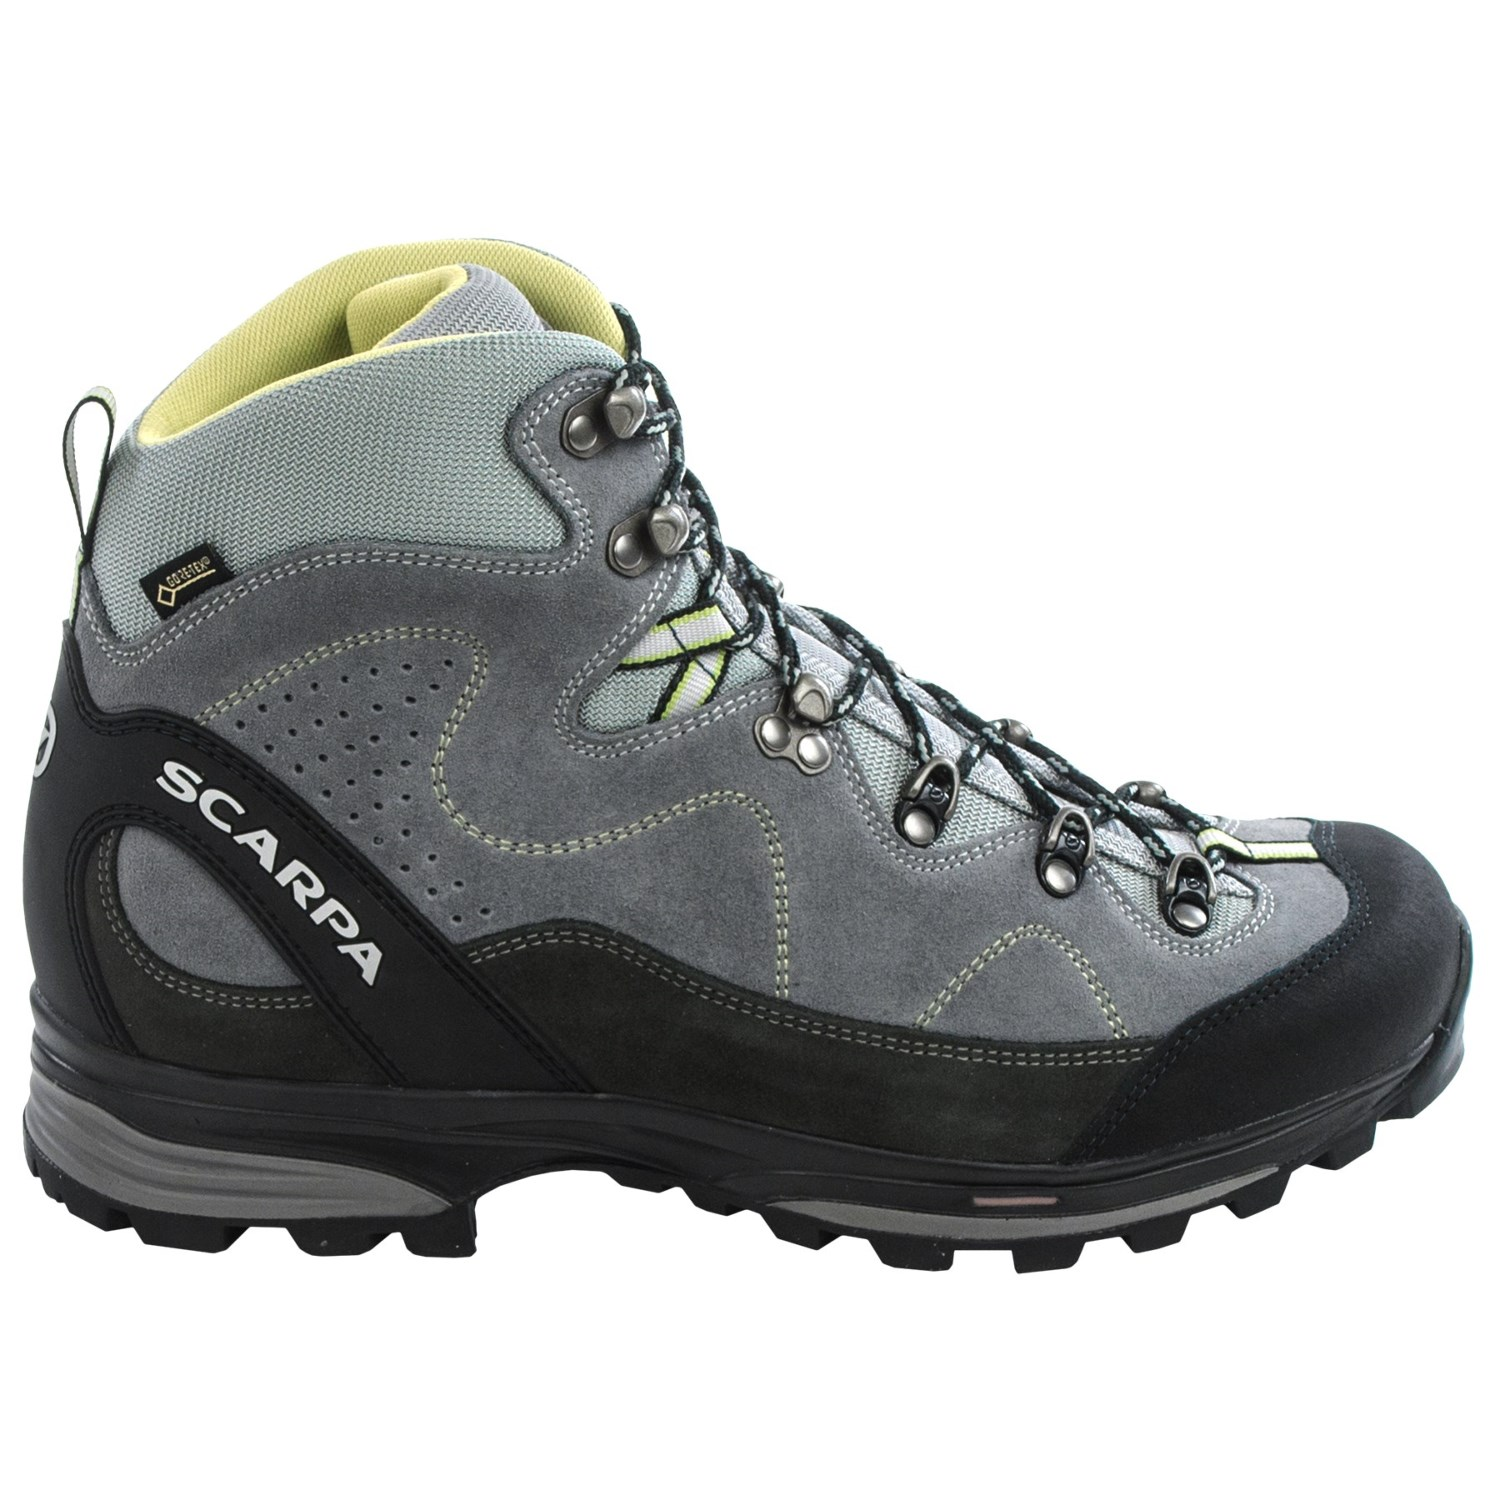 Gifts For 25 Scarpa Kinesis Gore Tex 174 Hiking Boots For Men Save 36